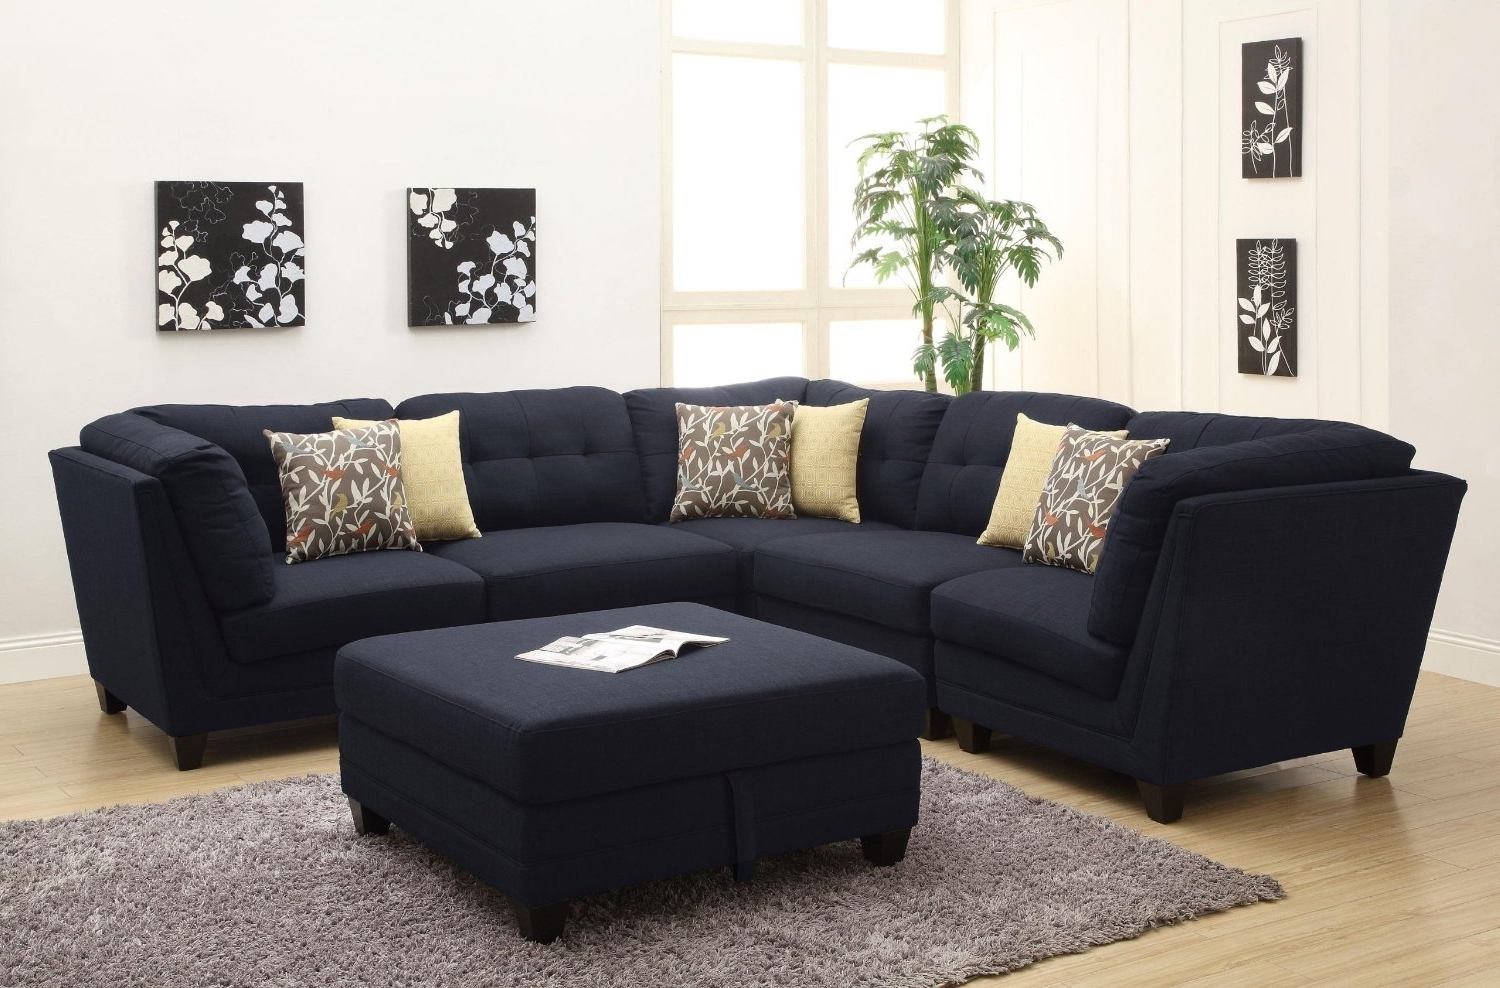 Fashionable Comfortable Sectional Sofas Intended For Most Comfortable Sectional Sofa For Fulfilling A Pleasant (View 6 of 15)